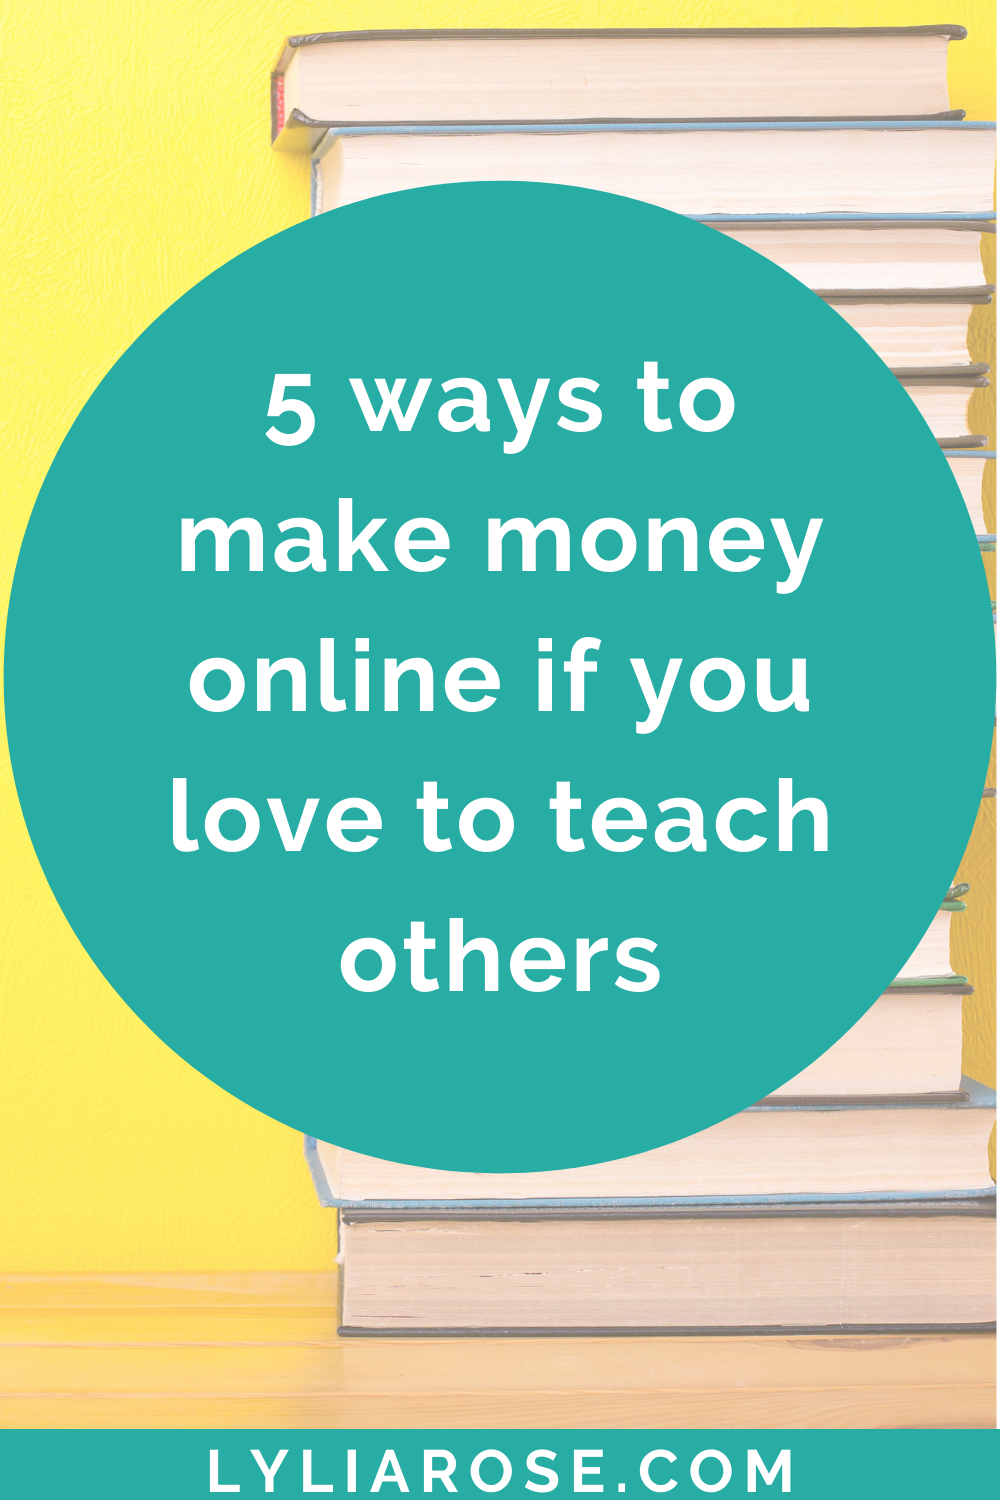 5 ways to make money online if you love to teach